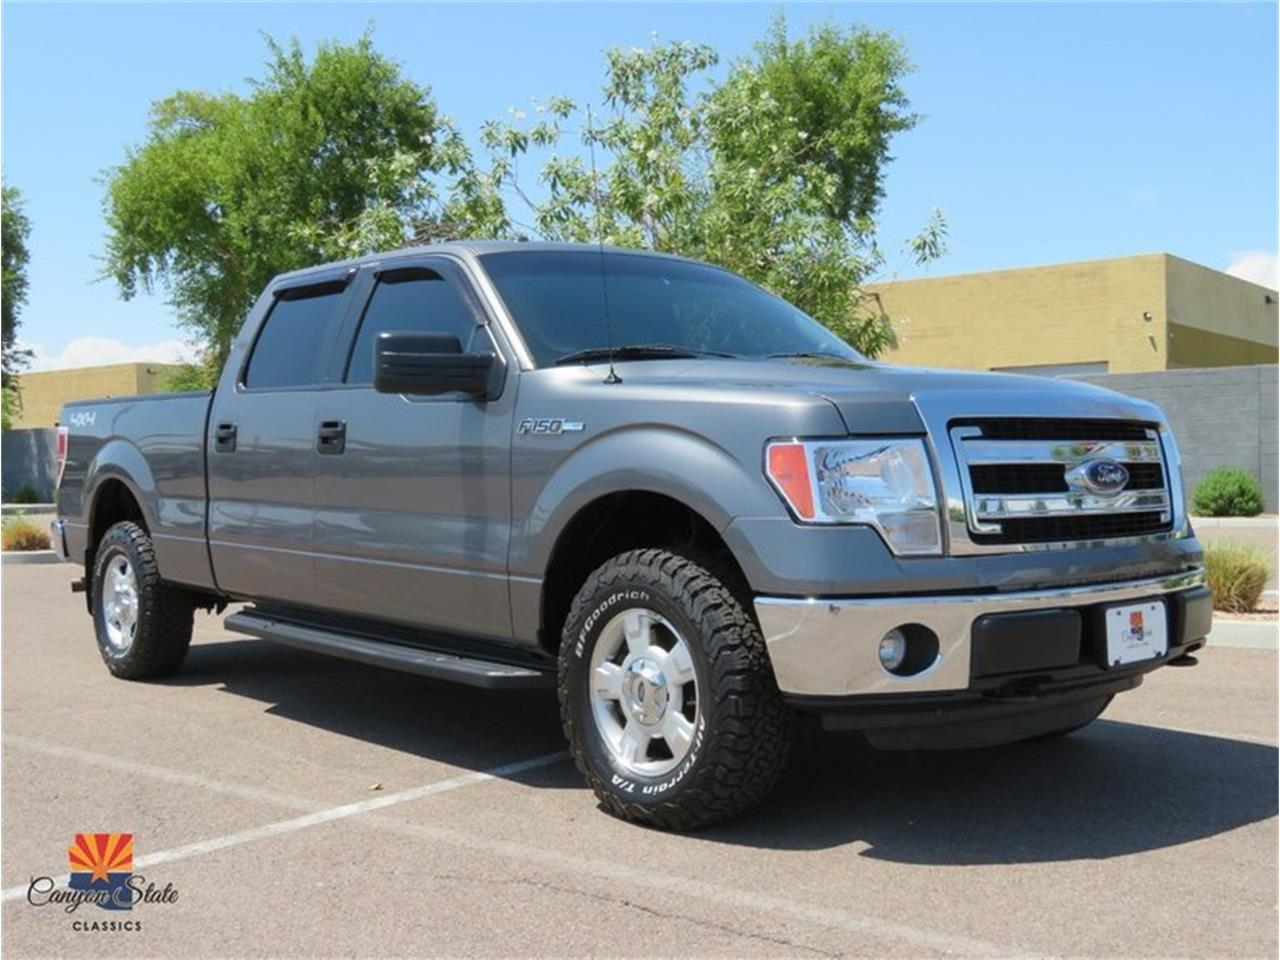 2014 Ford F150 for sale in Tempe, AZ – photo 32